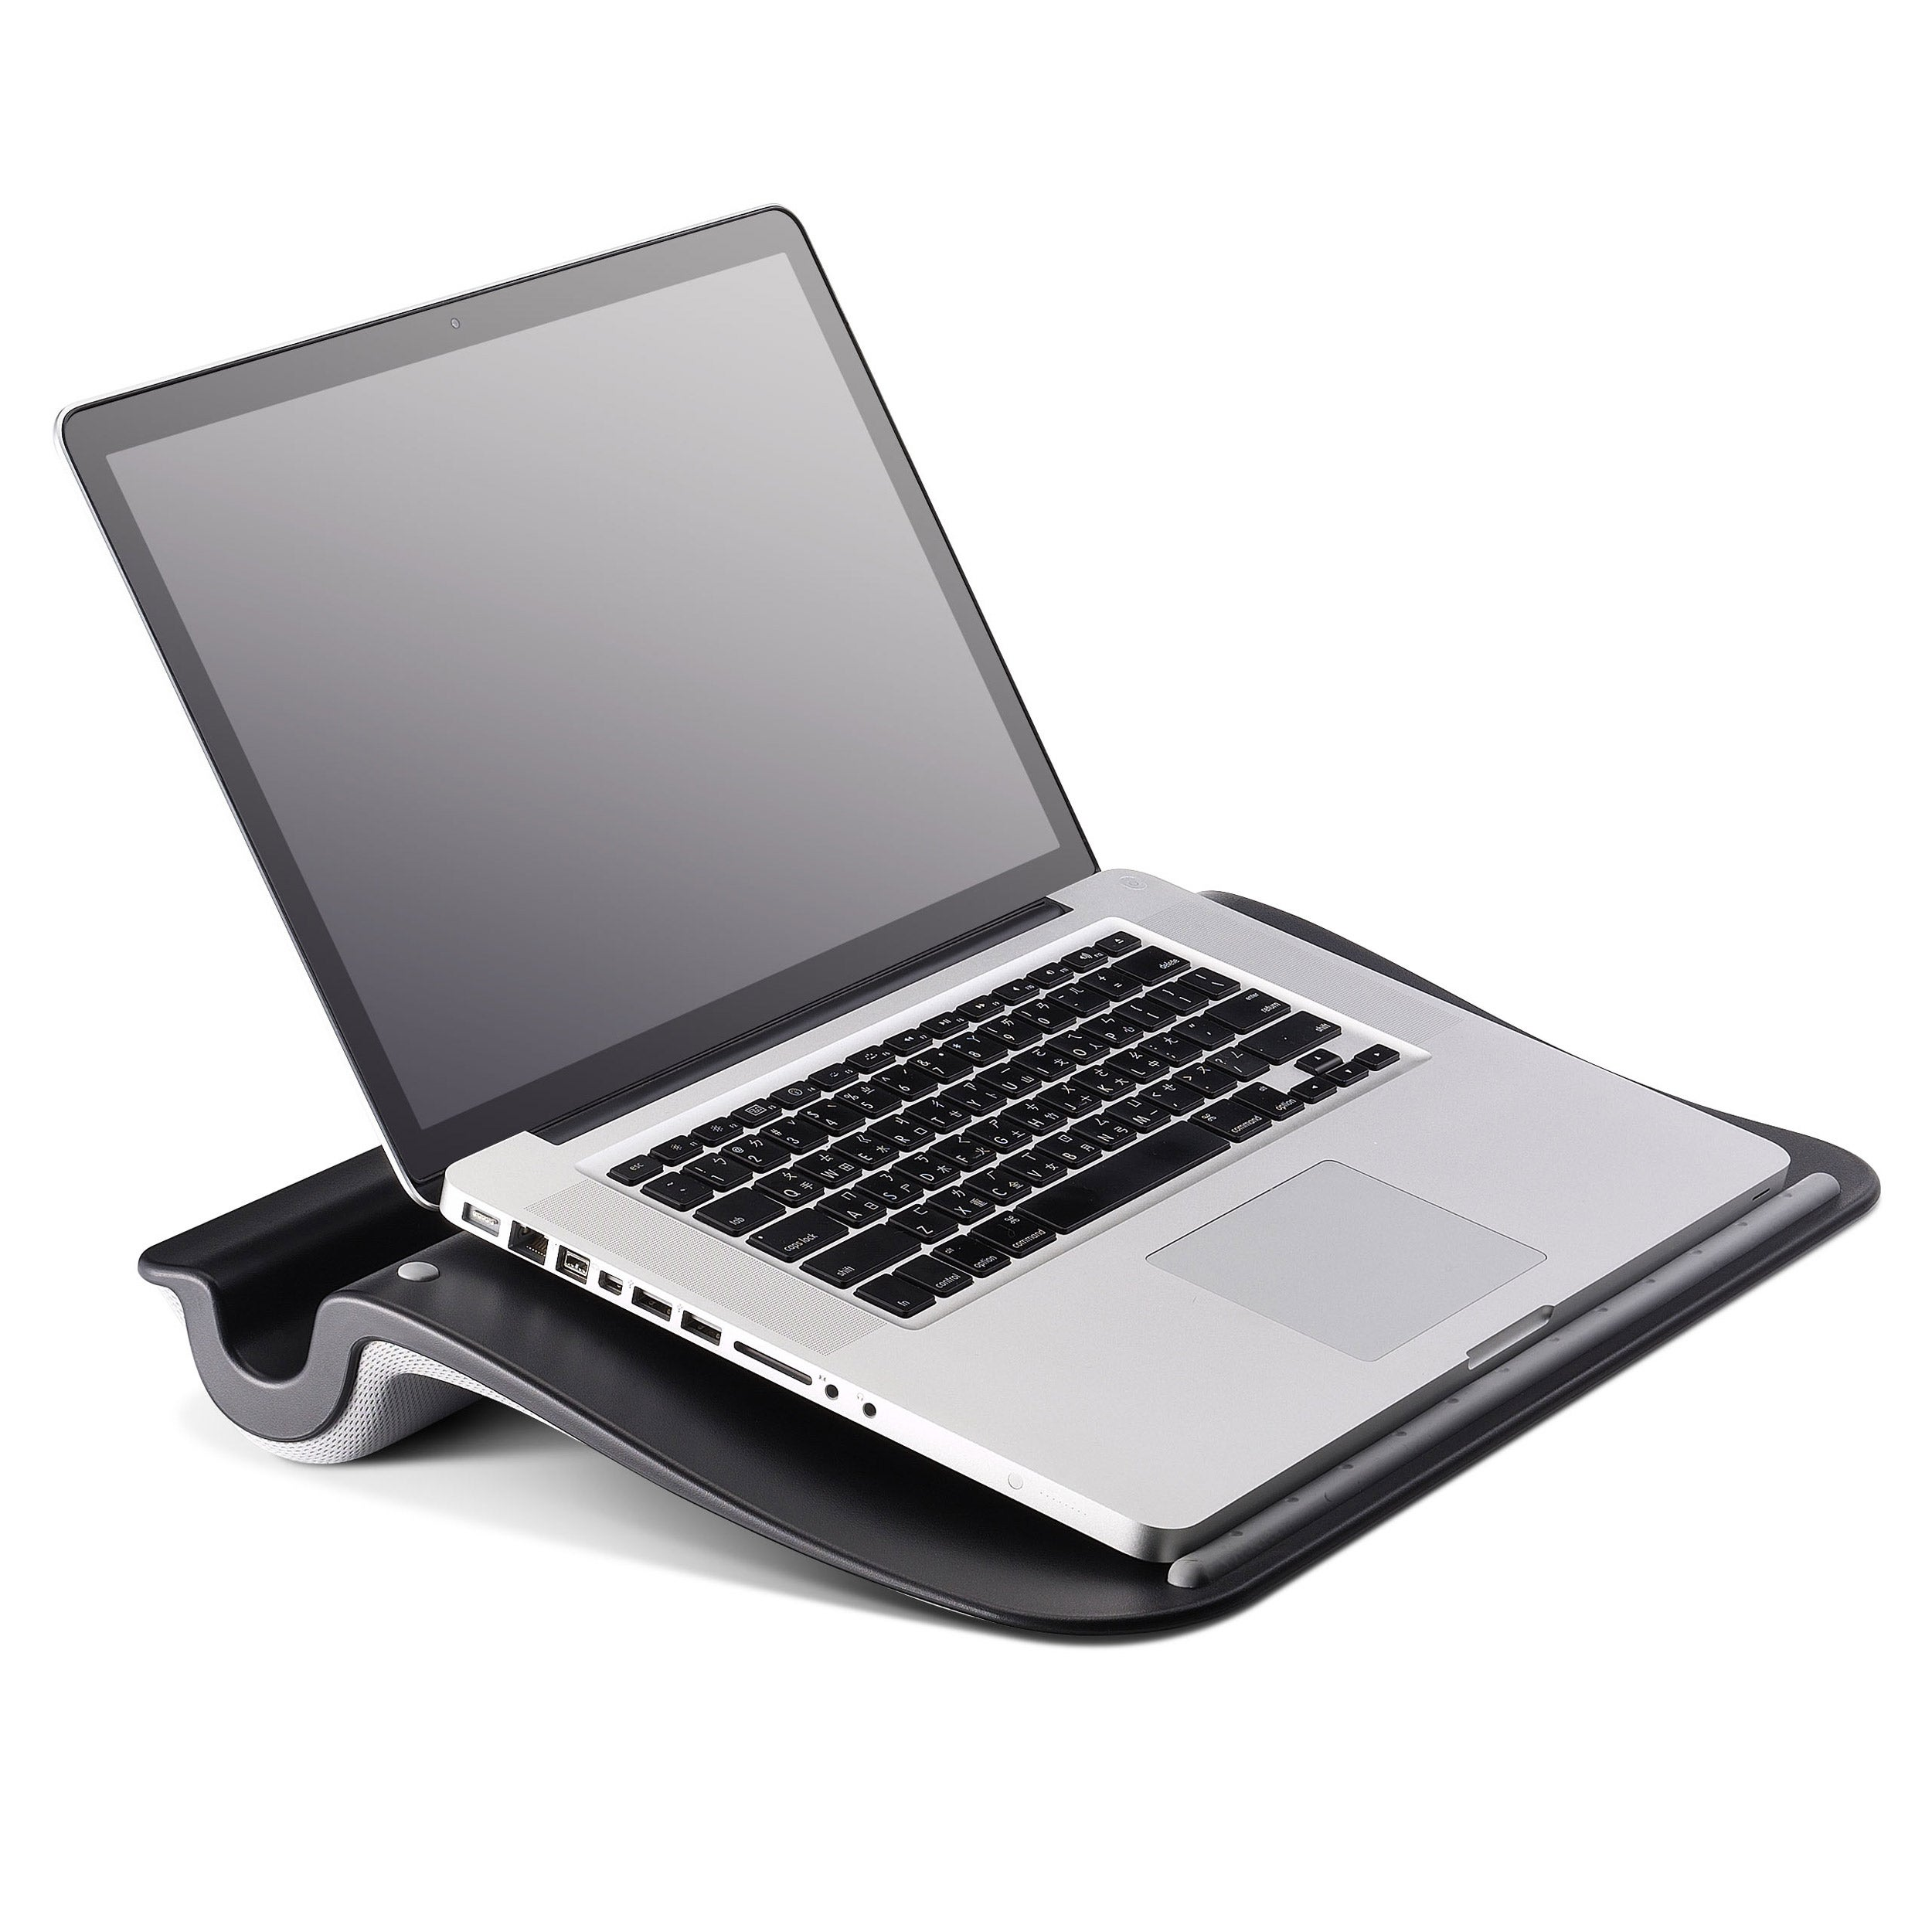 Cooler Master forter Laptop Lap Desk with Pillow